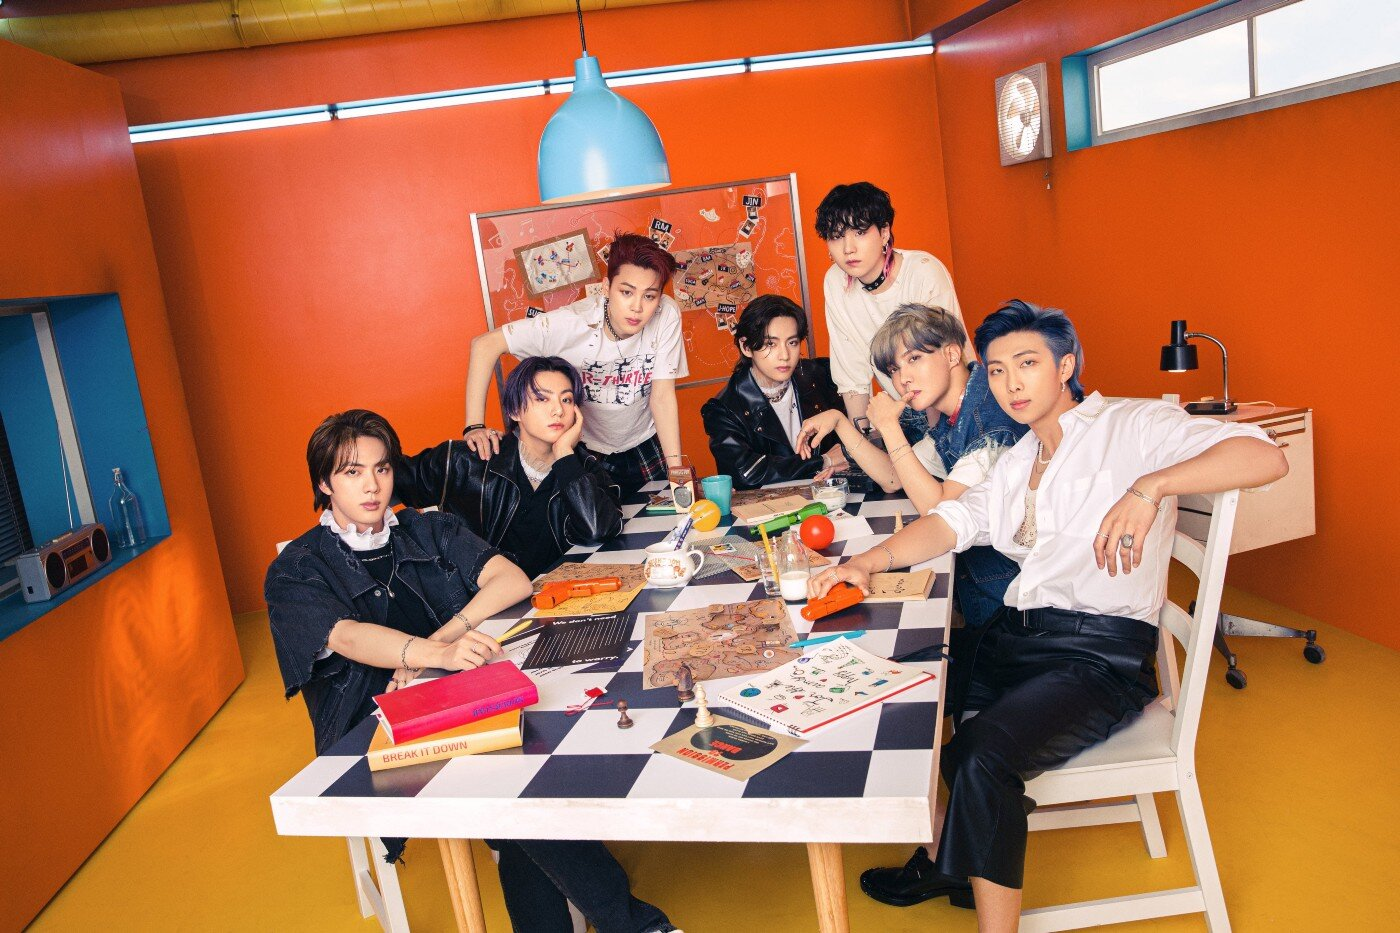 BTS in Concept Version 1 for the Butter CD. Photo copyright Big Hit Music.